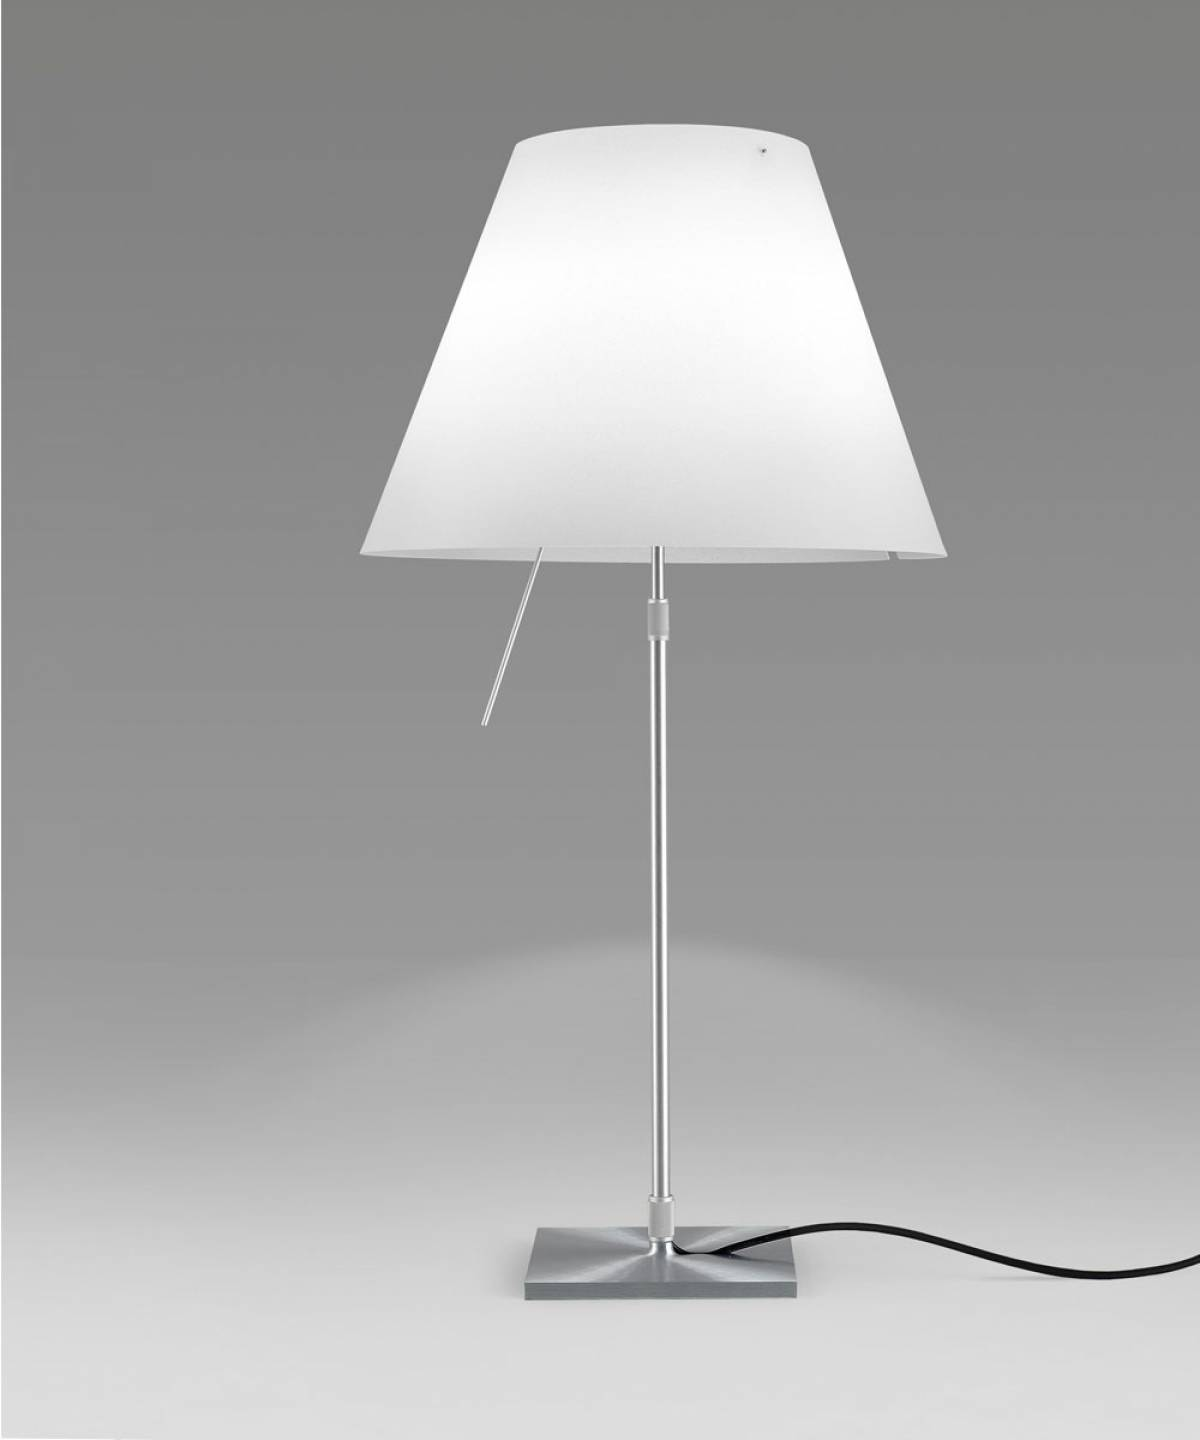 1 Costanza table lamp LED Luceplan